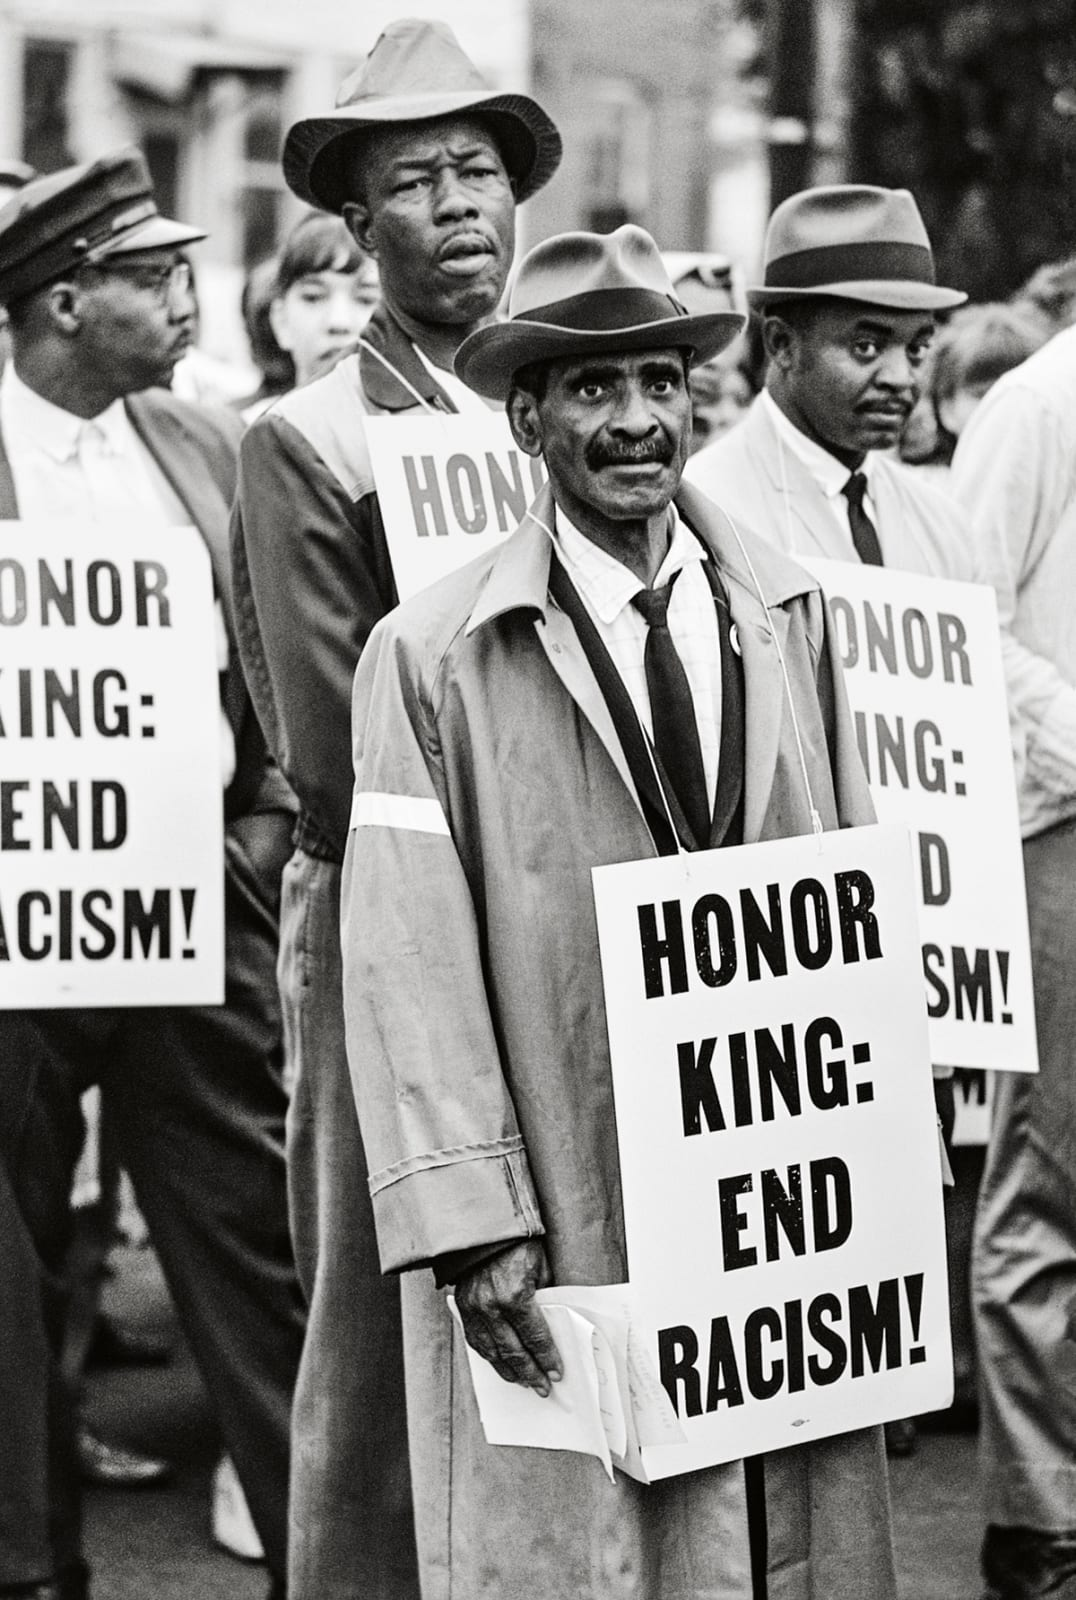 Steve Schapiro Honor King, End Racism, Memphis, Tennessee, 1968